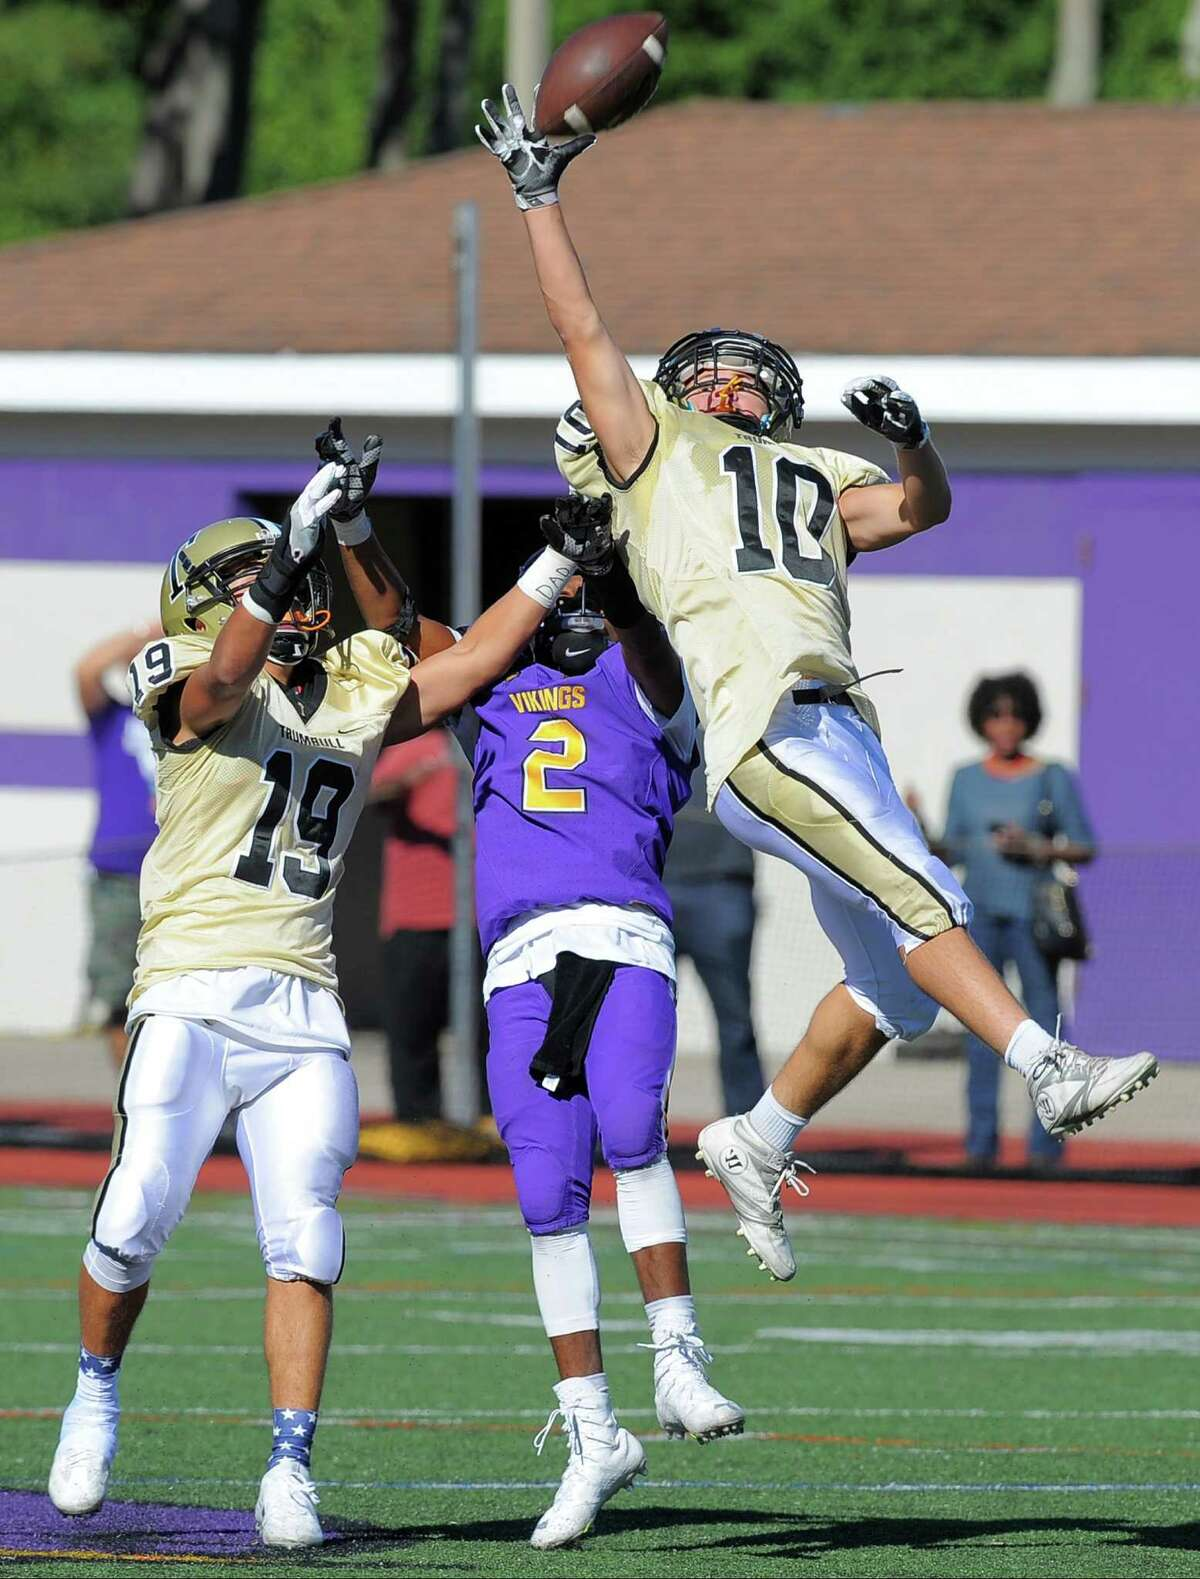 Trumbull Dustin Siqueira and Zach Heche break up the pass intended for Westhill Noldylens Metayerin during second half football action on Saturday, Sept. 24, 2016 in Stamford, Connecticut. Trumbull defeated Westhill 48-19.